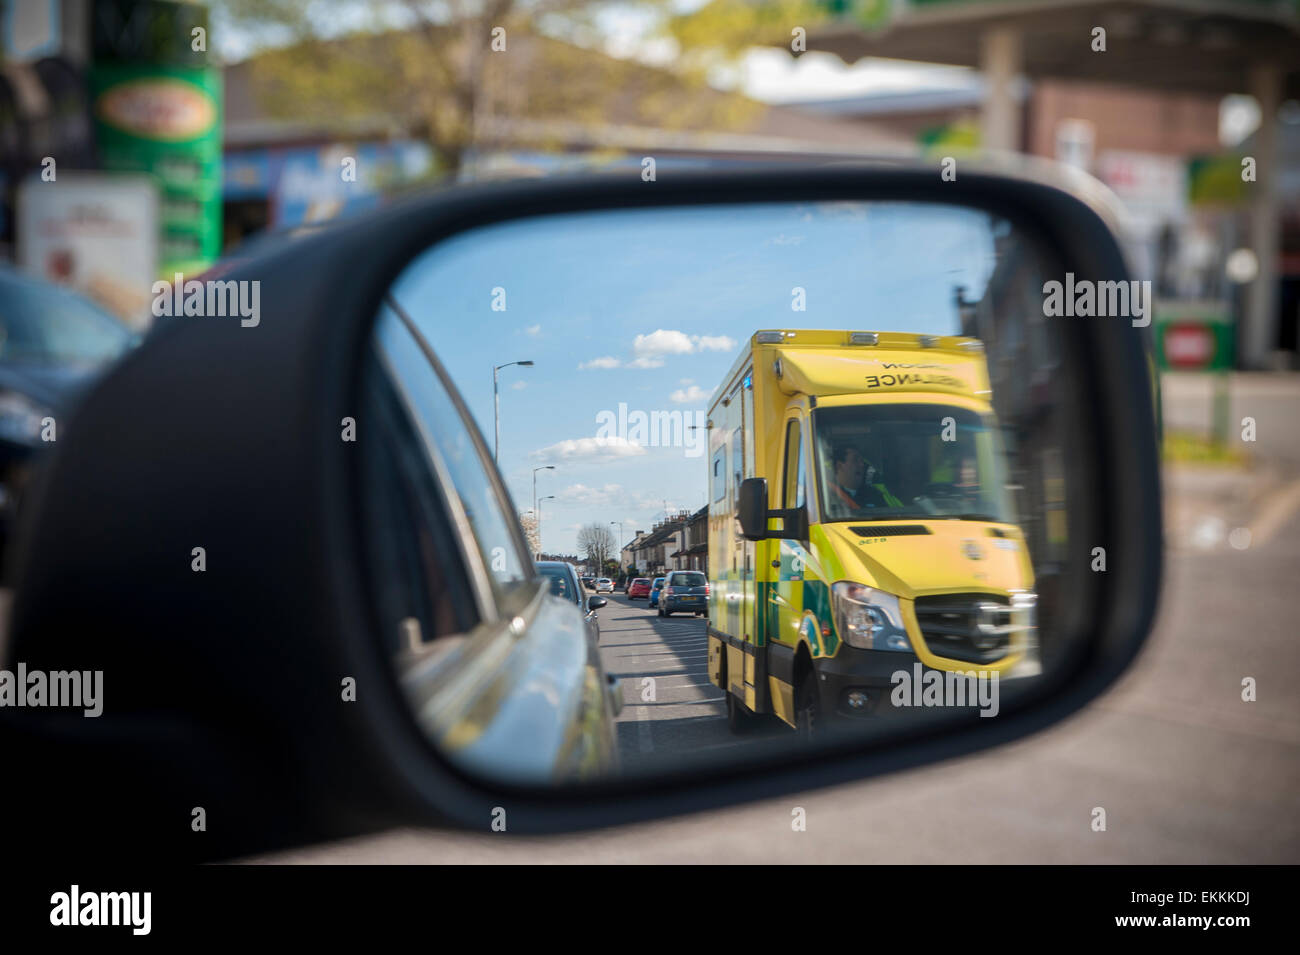 an racing ambulance with flashing lights overtakes a car which sees